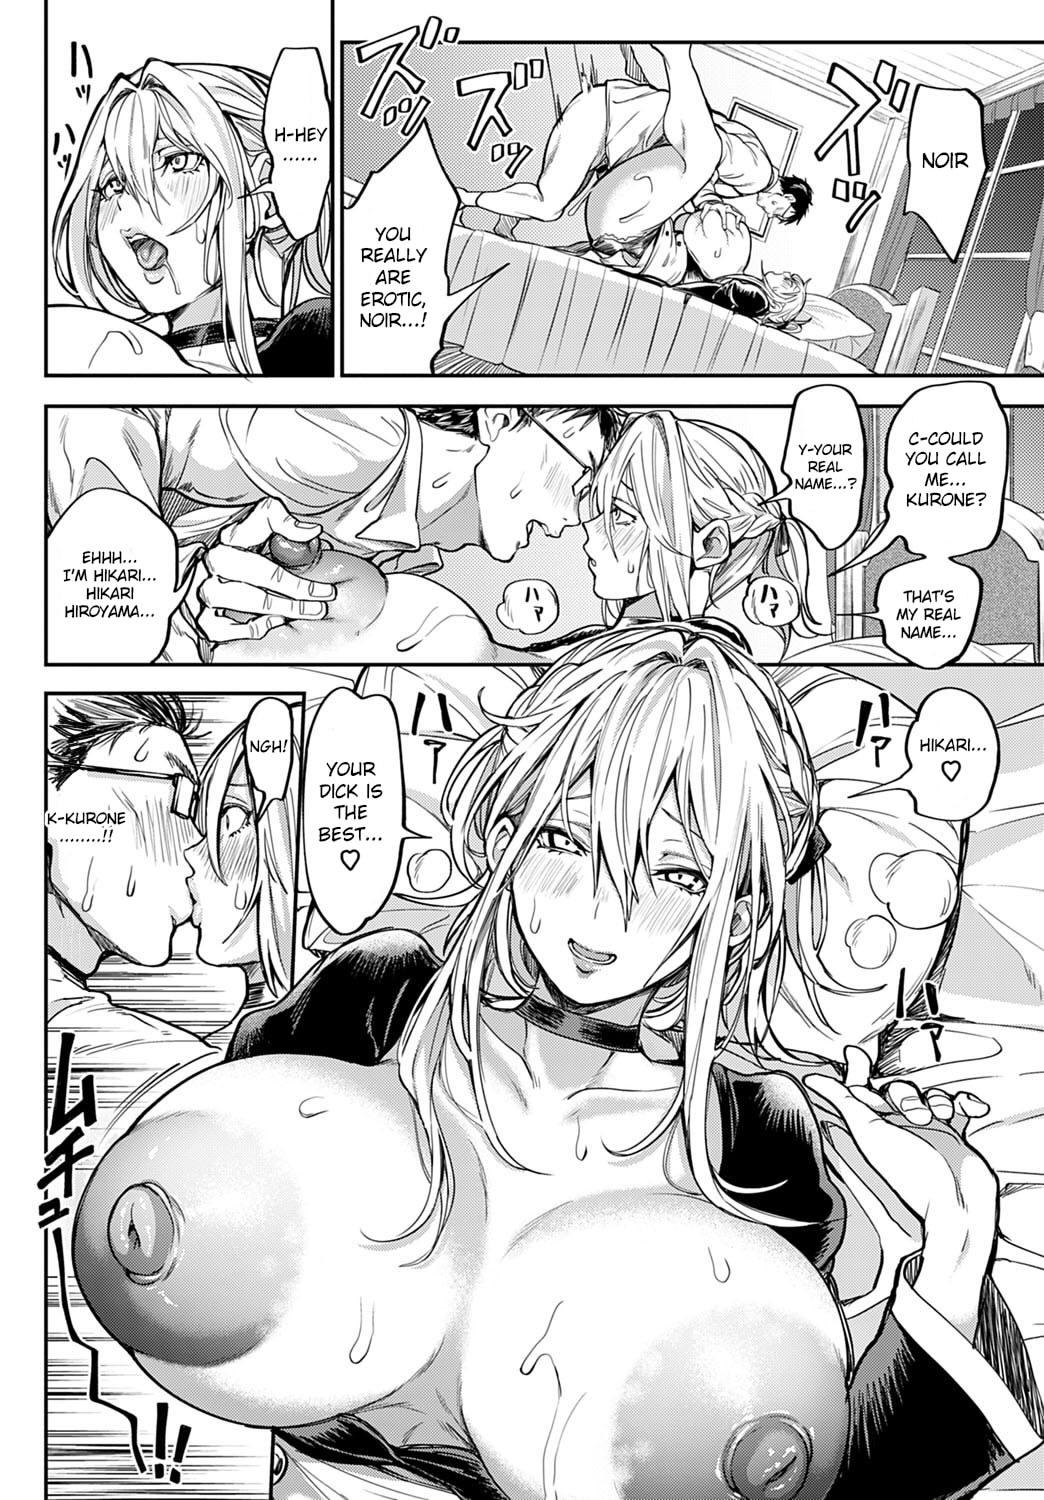 [Announ] Ore Saikyou Quest ~Isekai Harem no Sho~ | My story with my Harem in another world [English] [Digital] 59